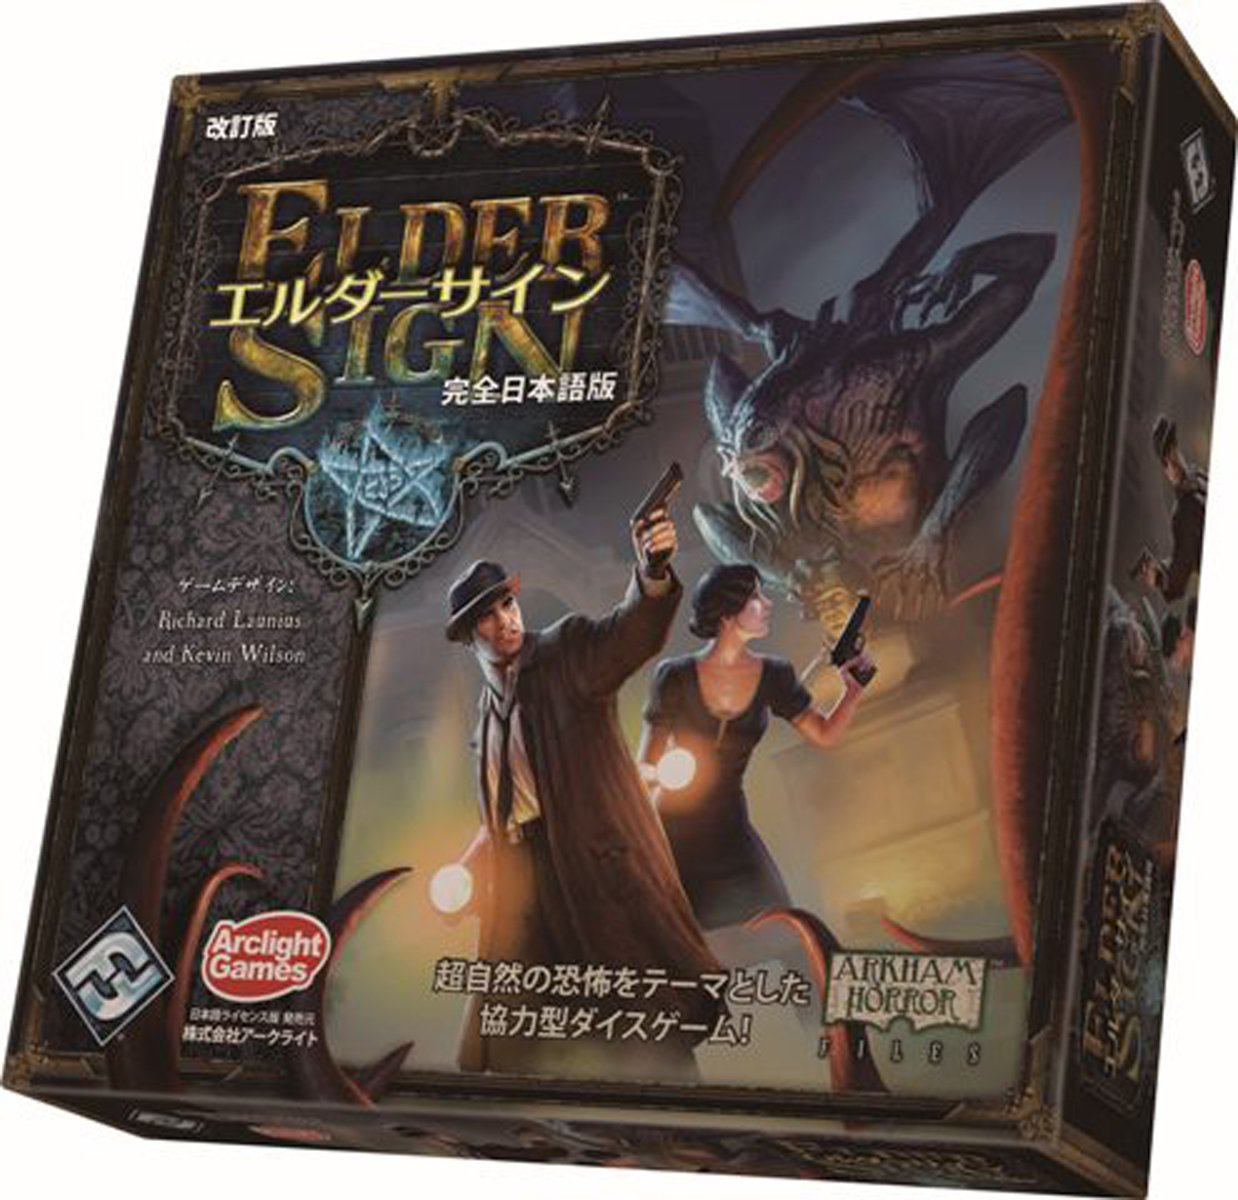 Elder sign revised edition Japanese version of the full (japan import)